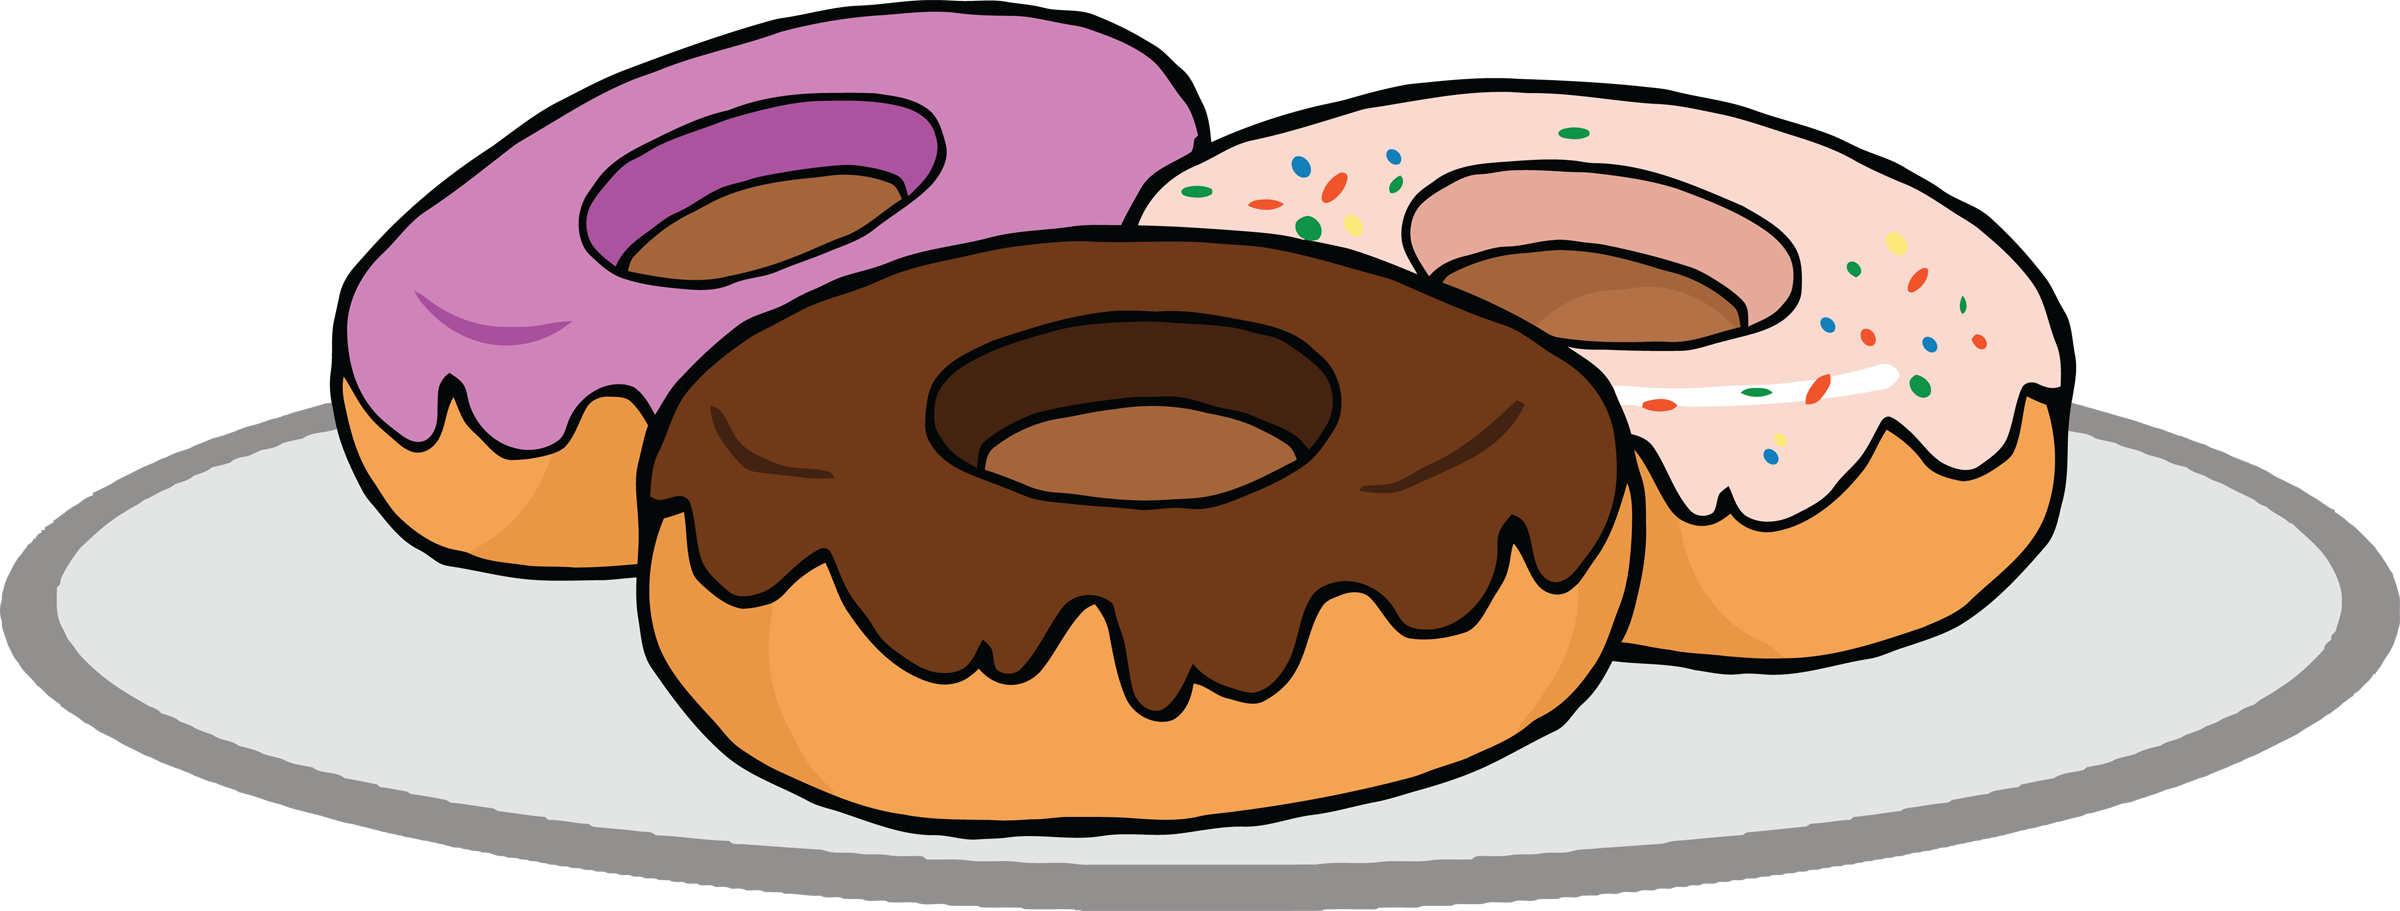 Baked turkey clipart freeuse library Donut Clip Art #13588 | Recipes | Pinterest | Donuts and Recipes freeuse library